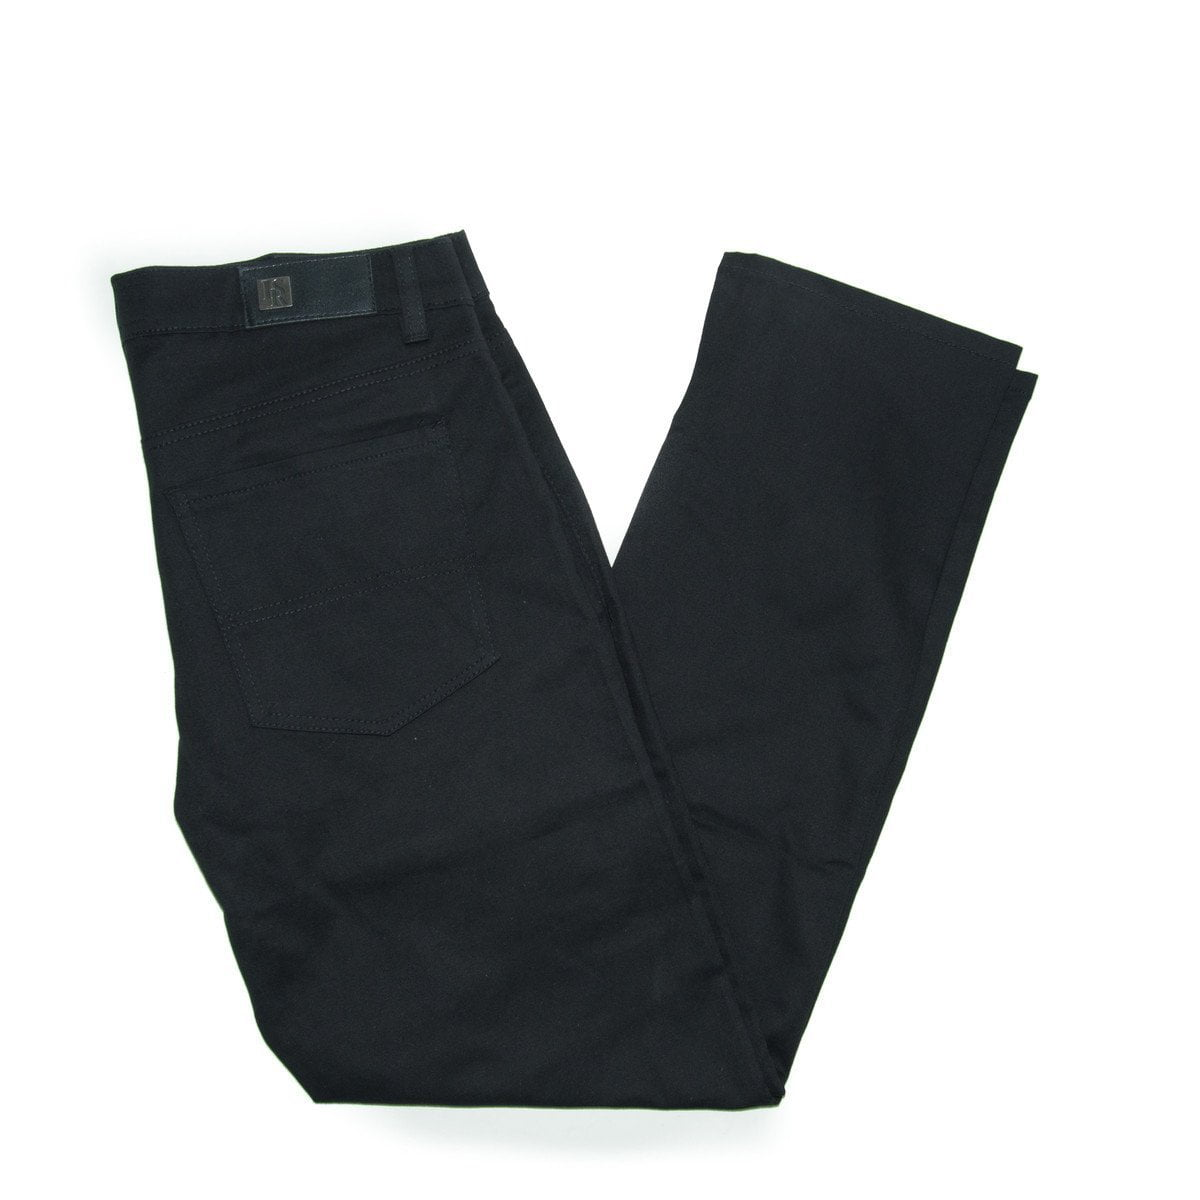 LR SCOOP Men's Twill Solid Slim Fit Pants